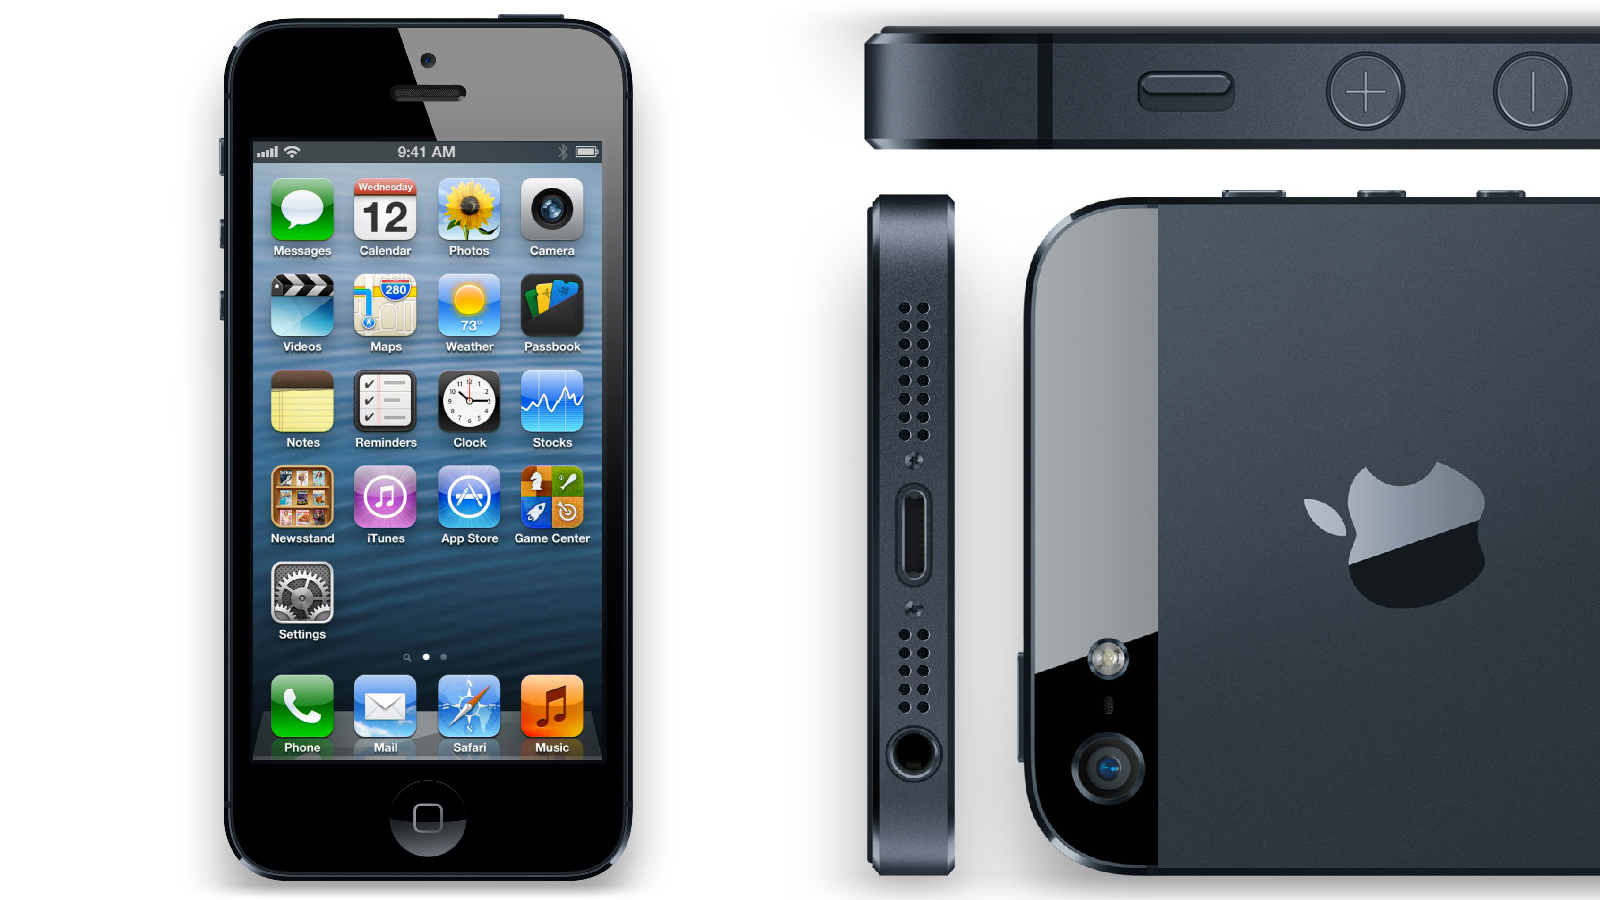 black-iphone1.jpg